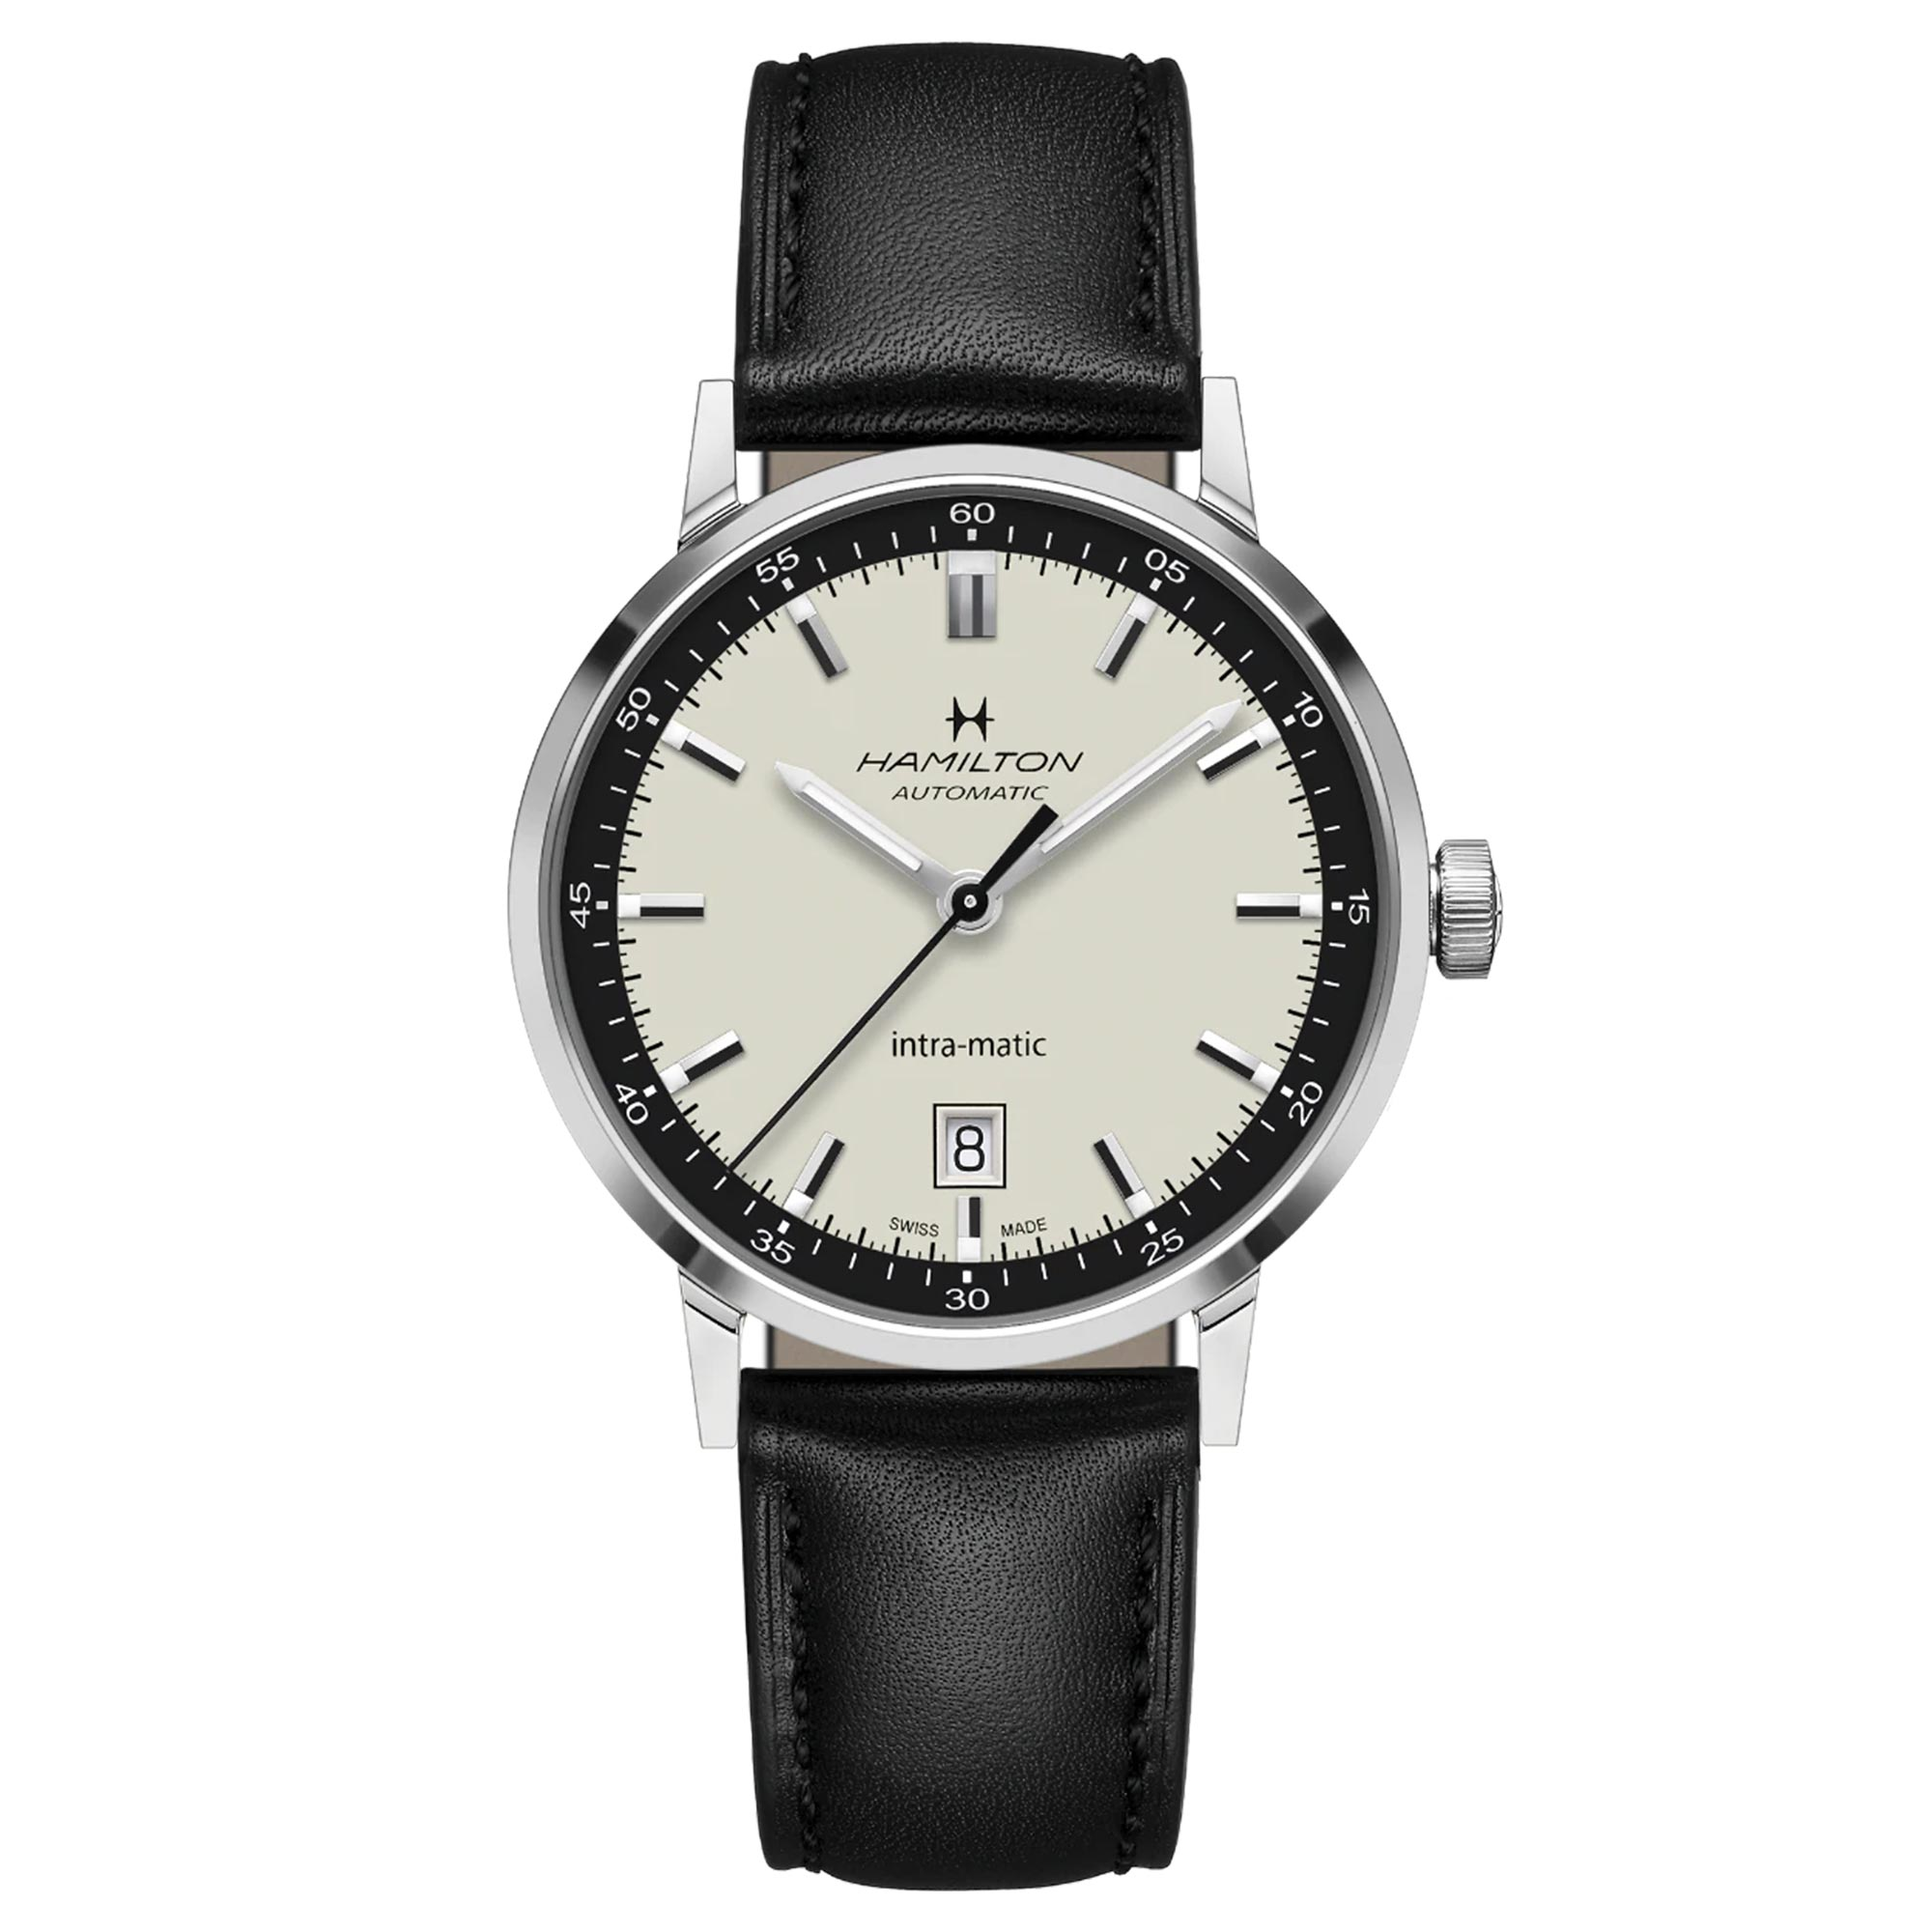 Hamilton American Classic Intra-Matic Automatic Leather Men's Watch H38425720